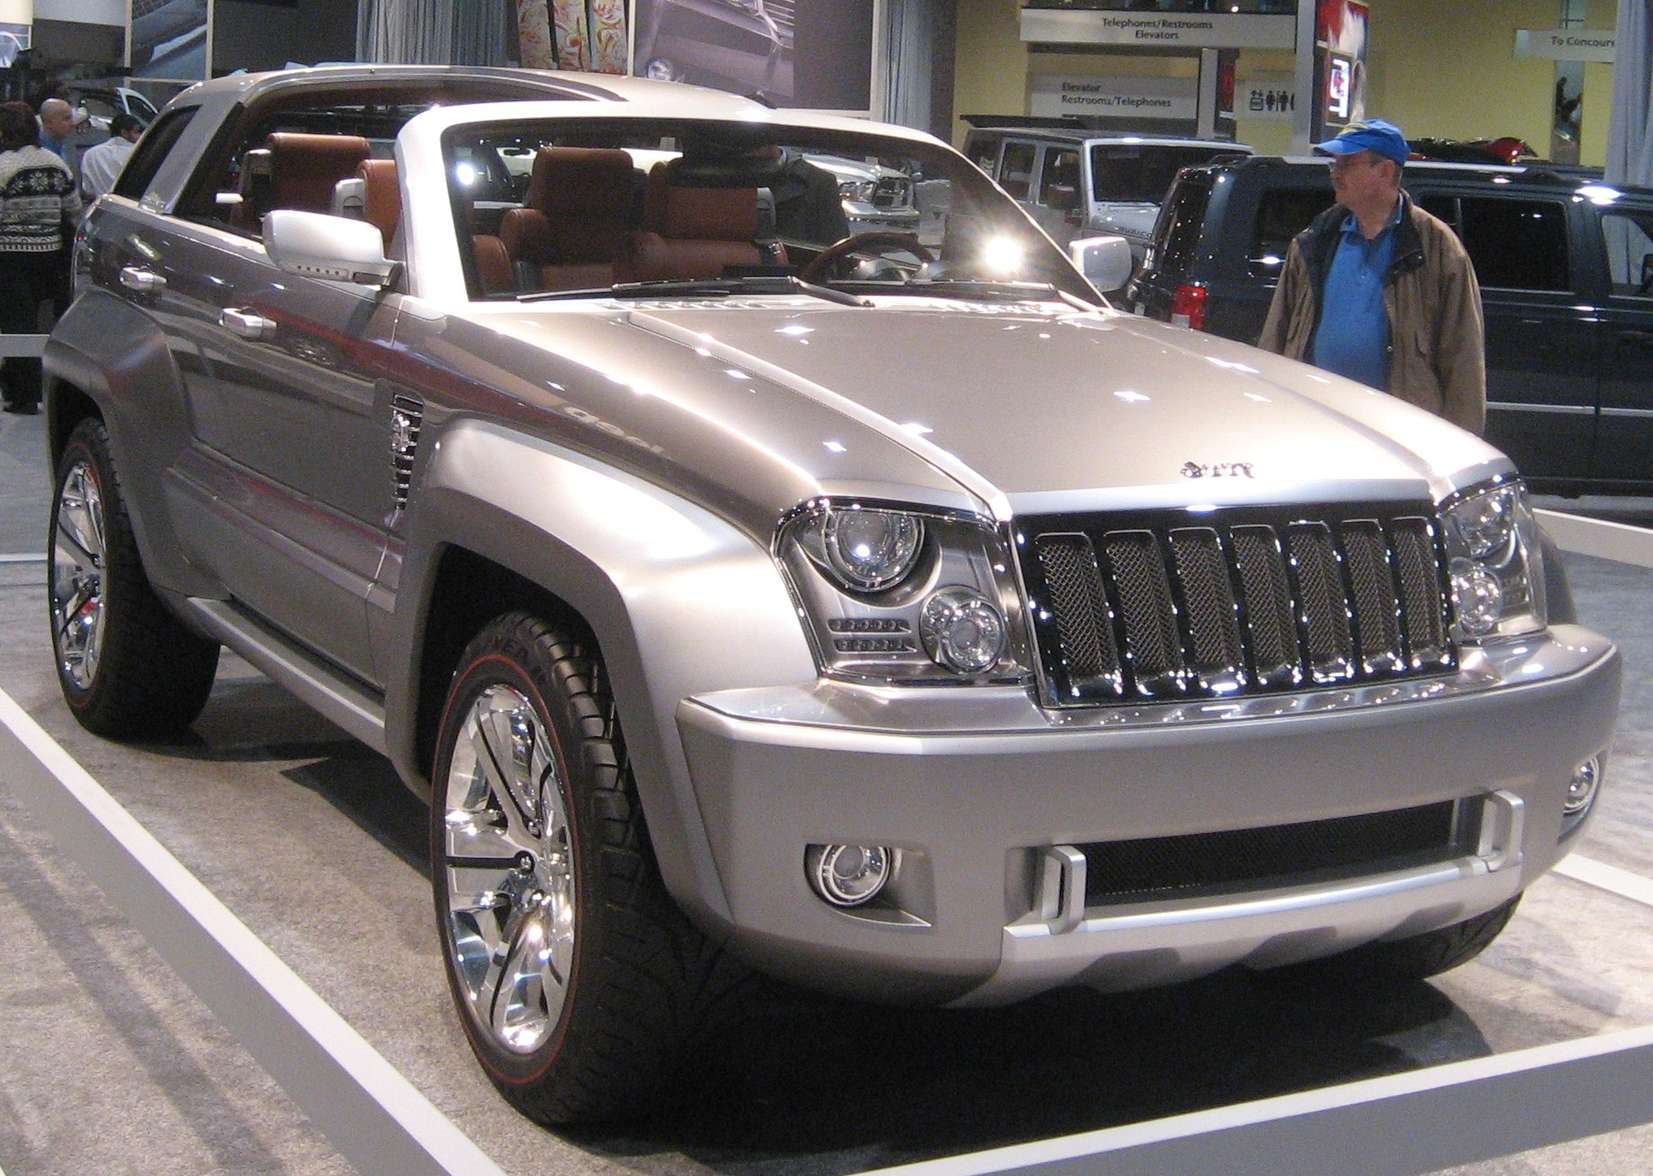 Jeep Trailhawk #8998637